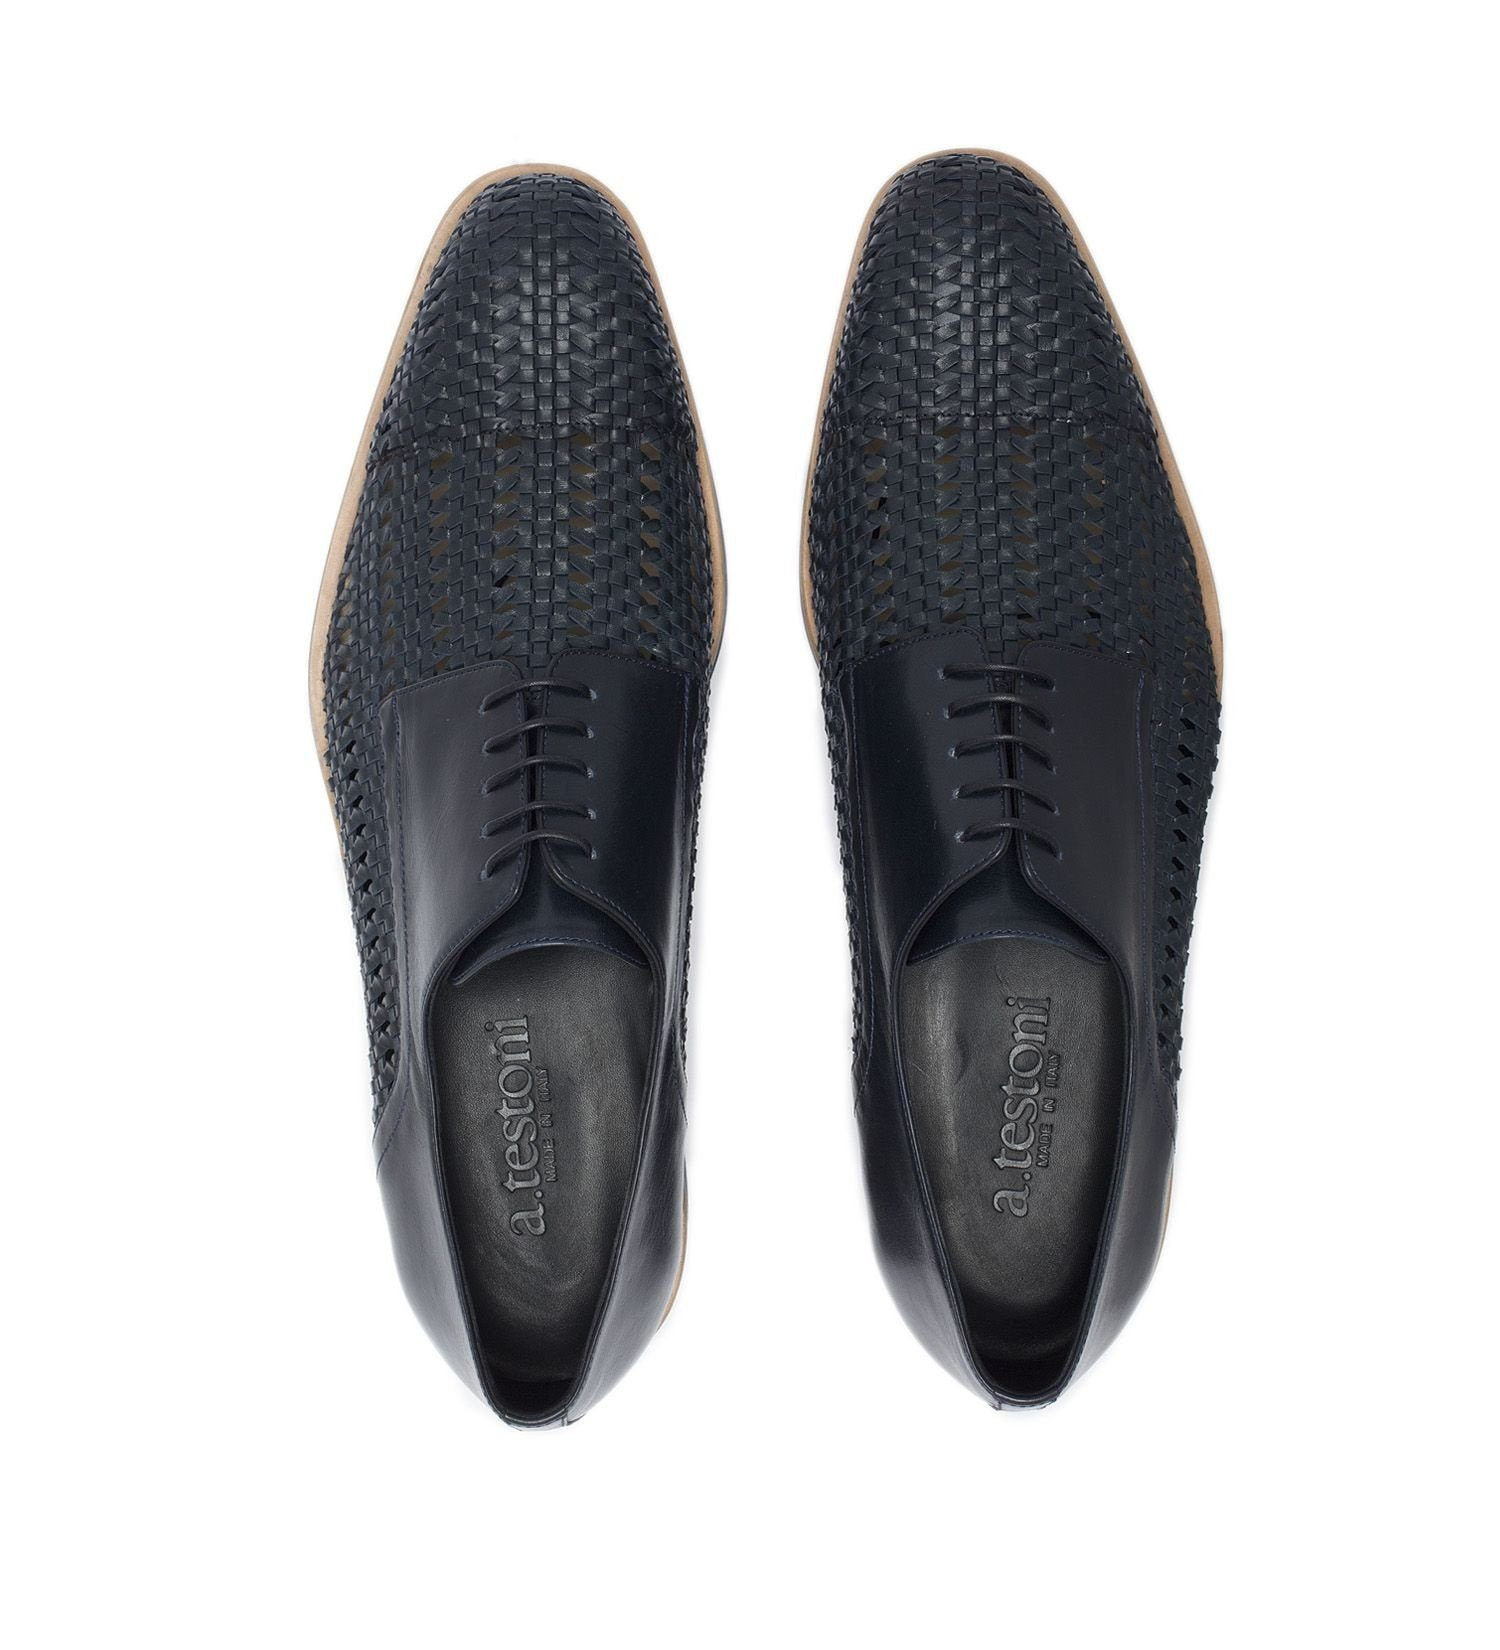 LACE-UP IN PERFORATED LEATHER,SHOES,A.TESTONI, | GentRow.com